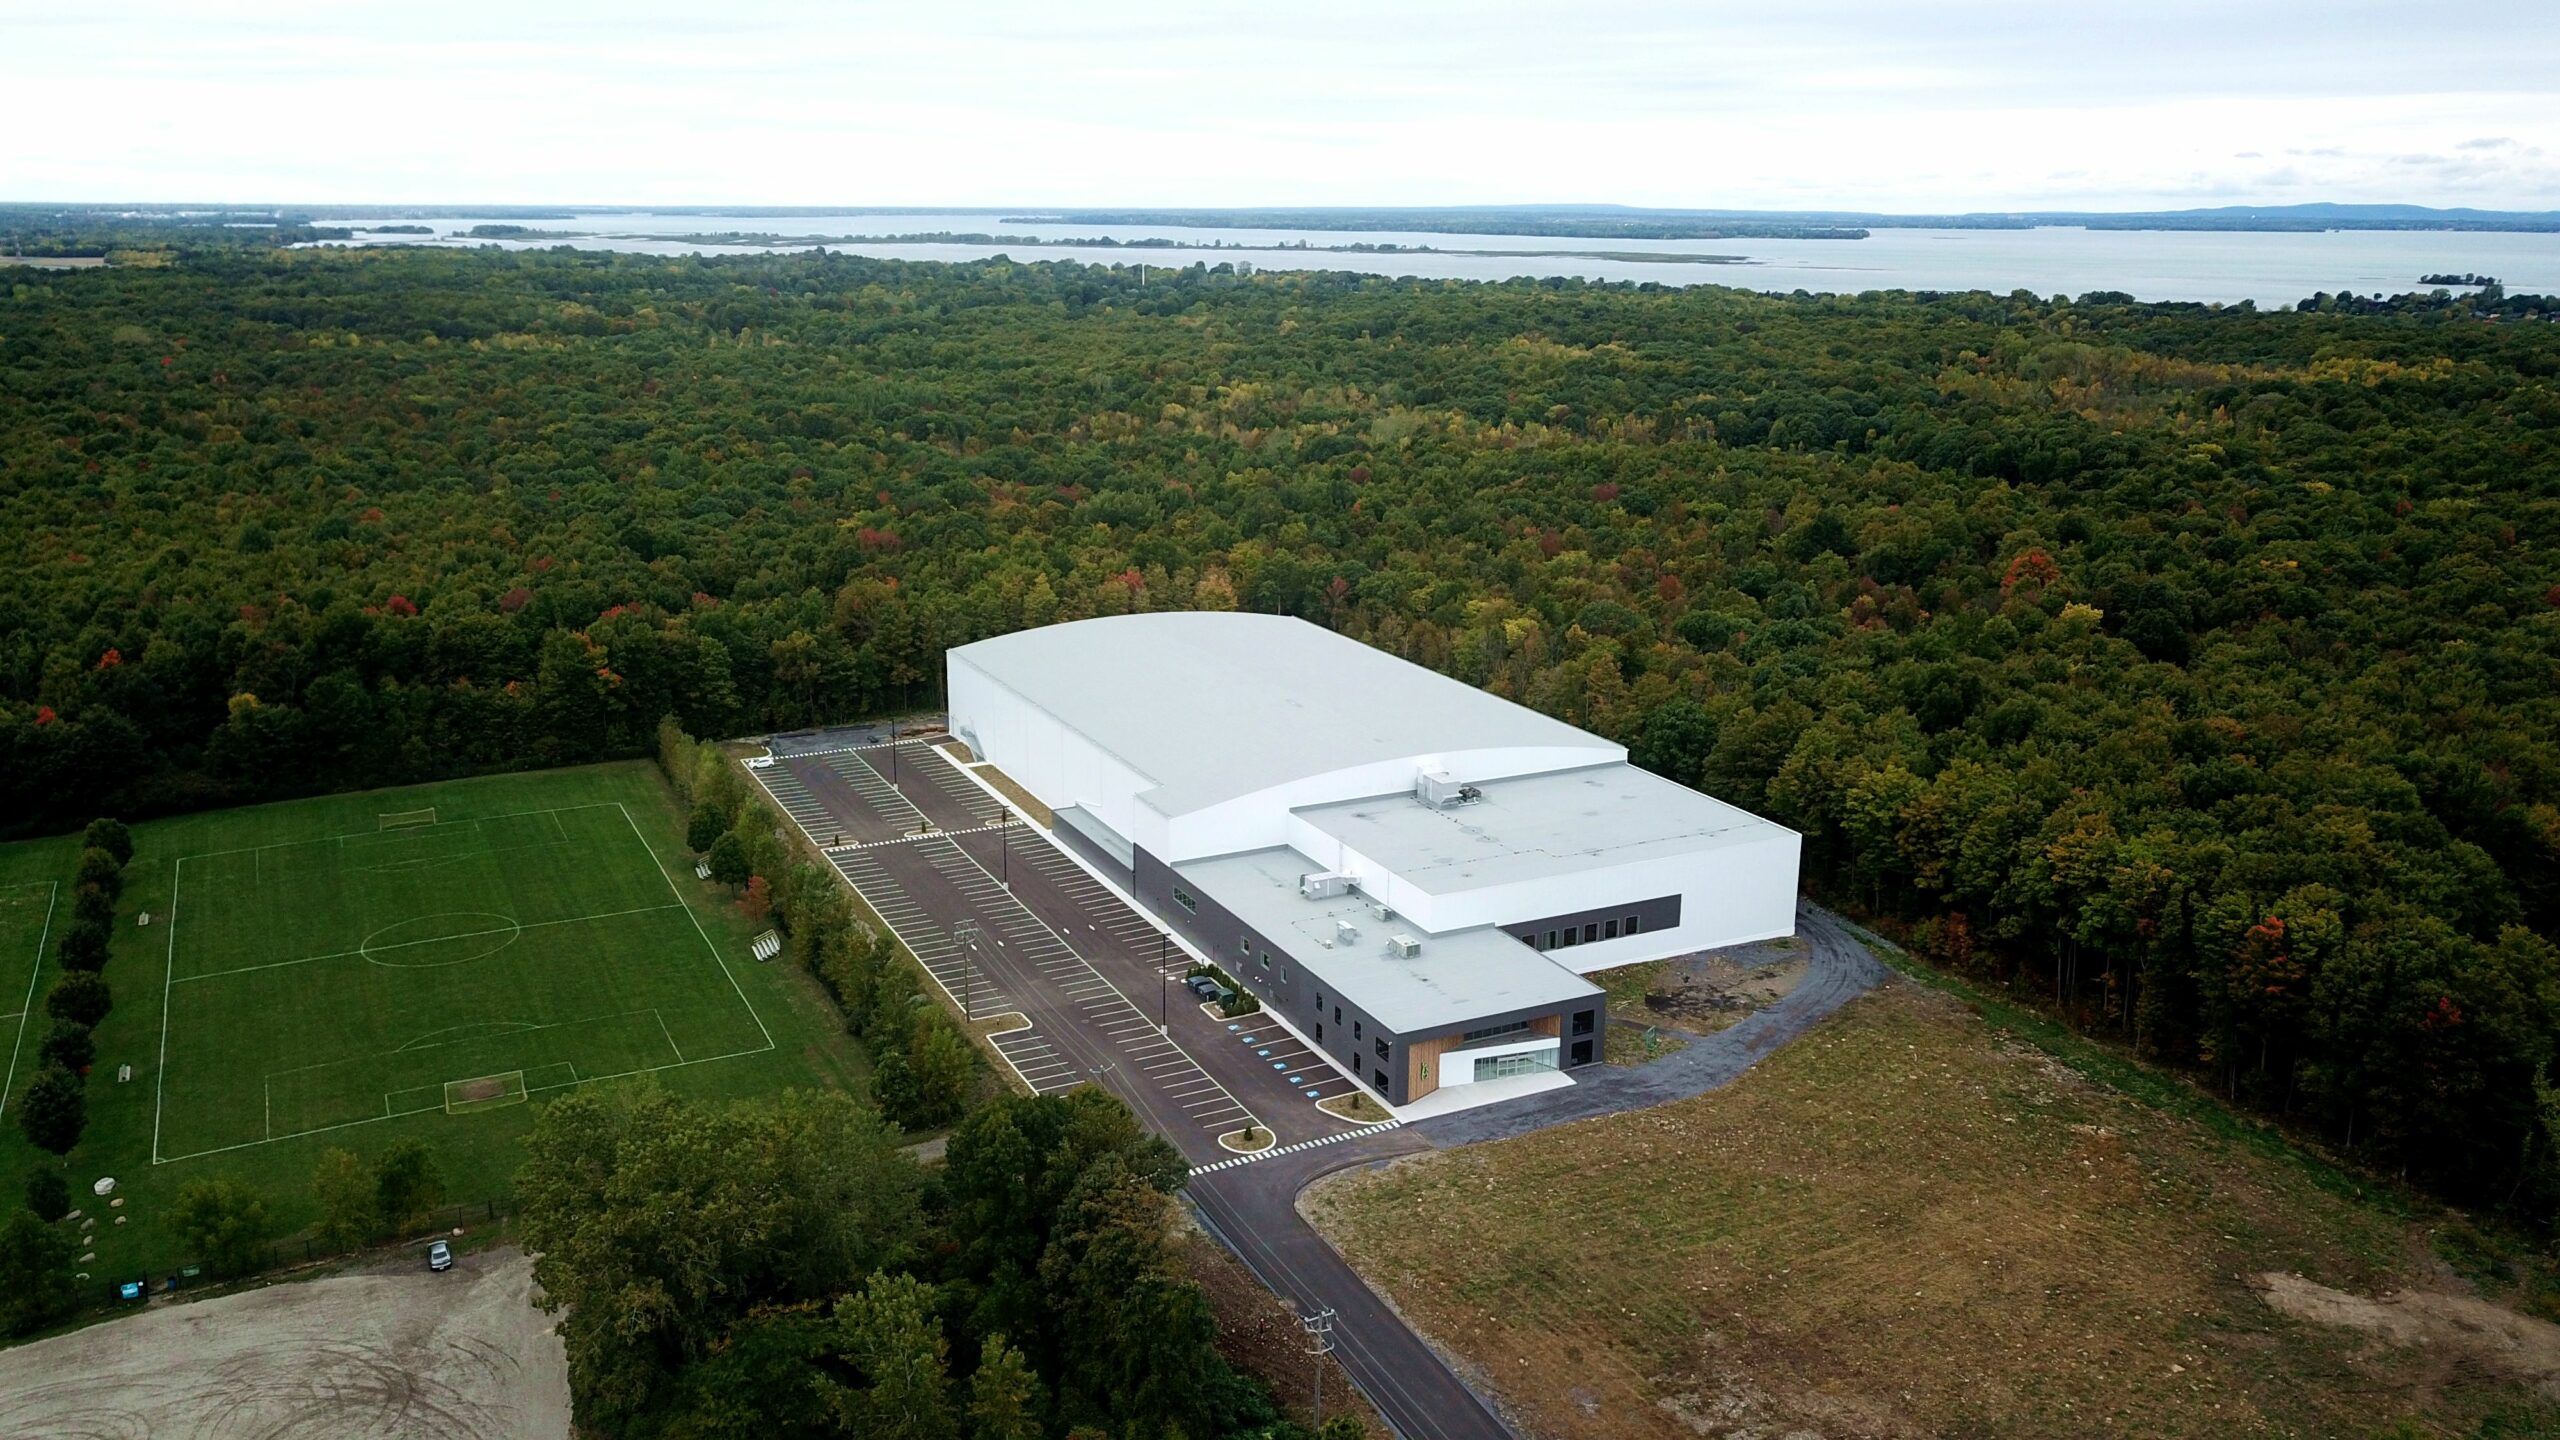 Aerial vue of the Sportplex